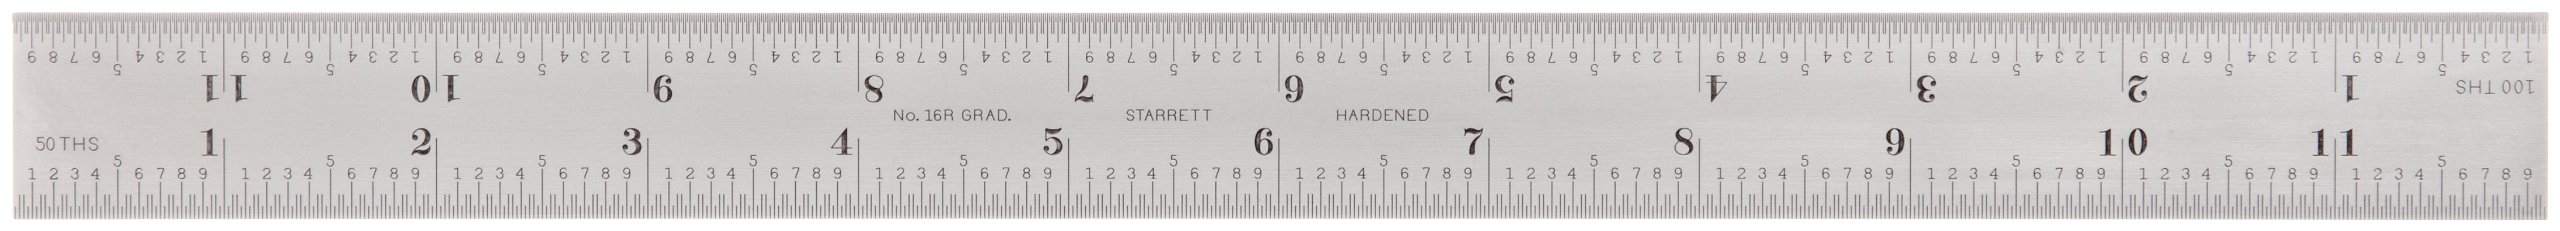 Starrett CB12-16R Combination Square Blade With Inch Graduations, Sets And Bevel Protractors, Satin Chrome Finish, 16R Graduation, 1'' Width, 3/32'' Thickness, 12'' Size